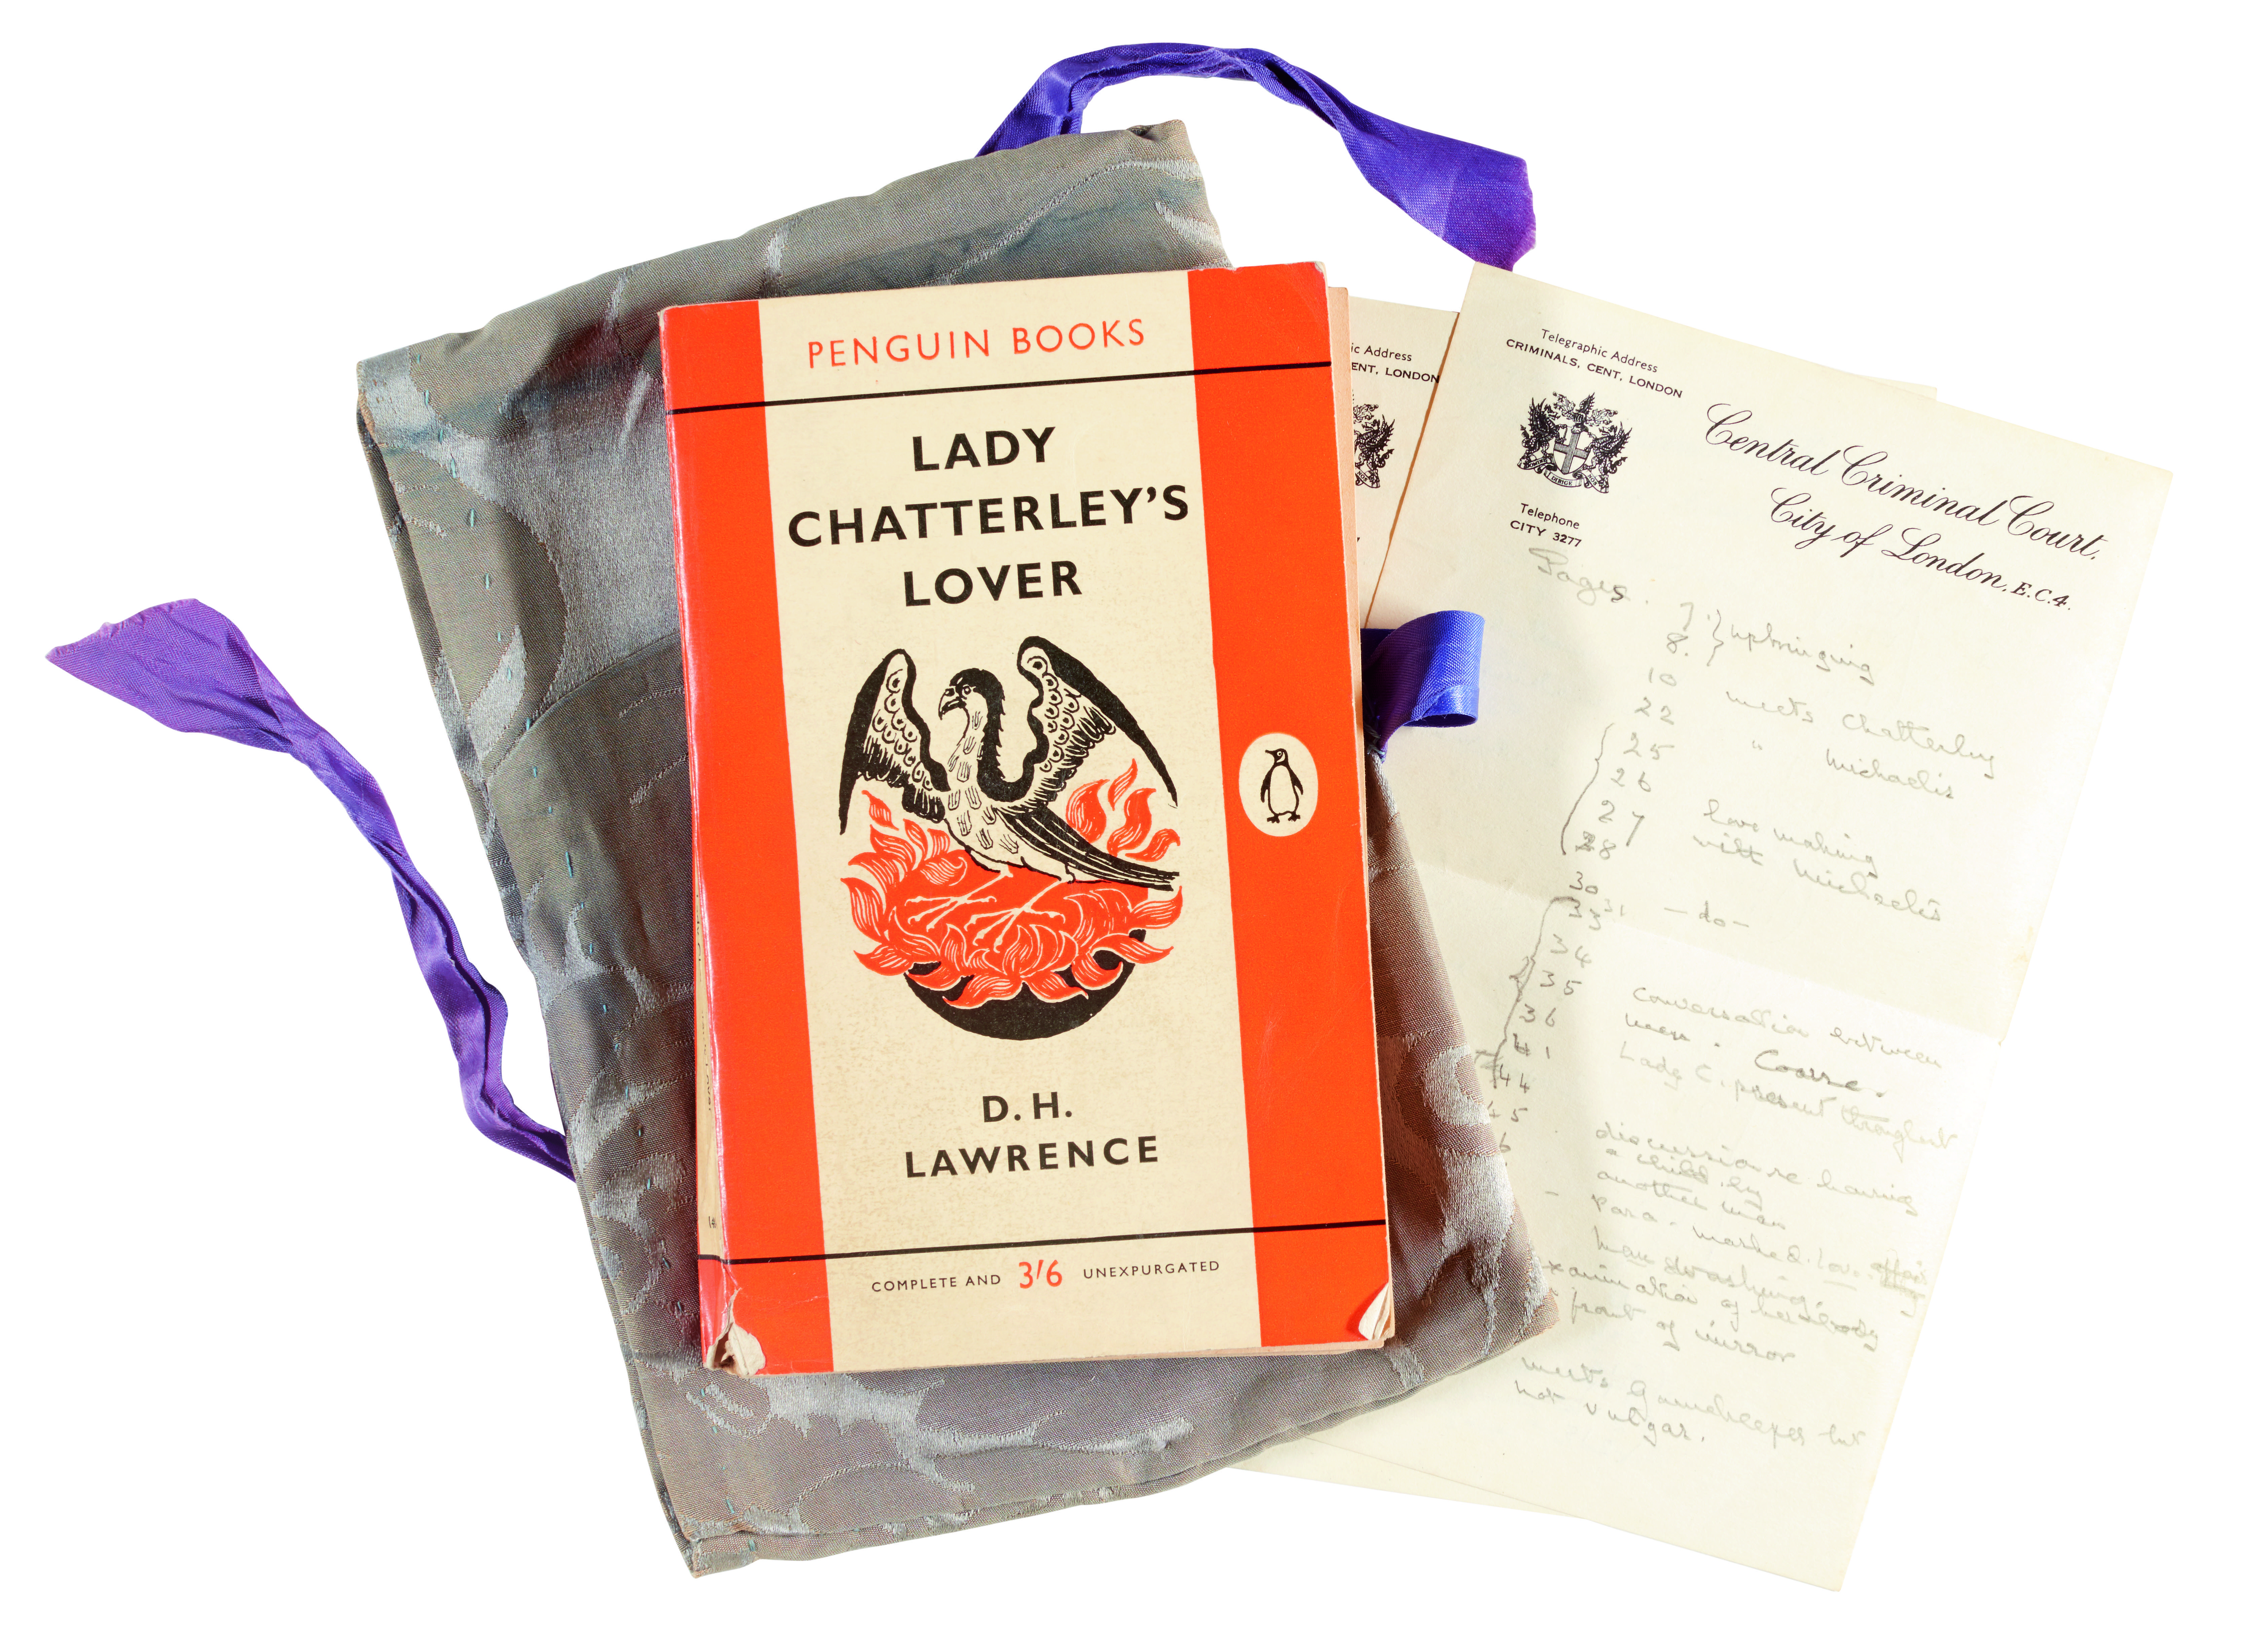 Export block on judge's Chatterley copy